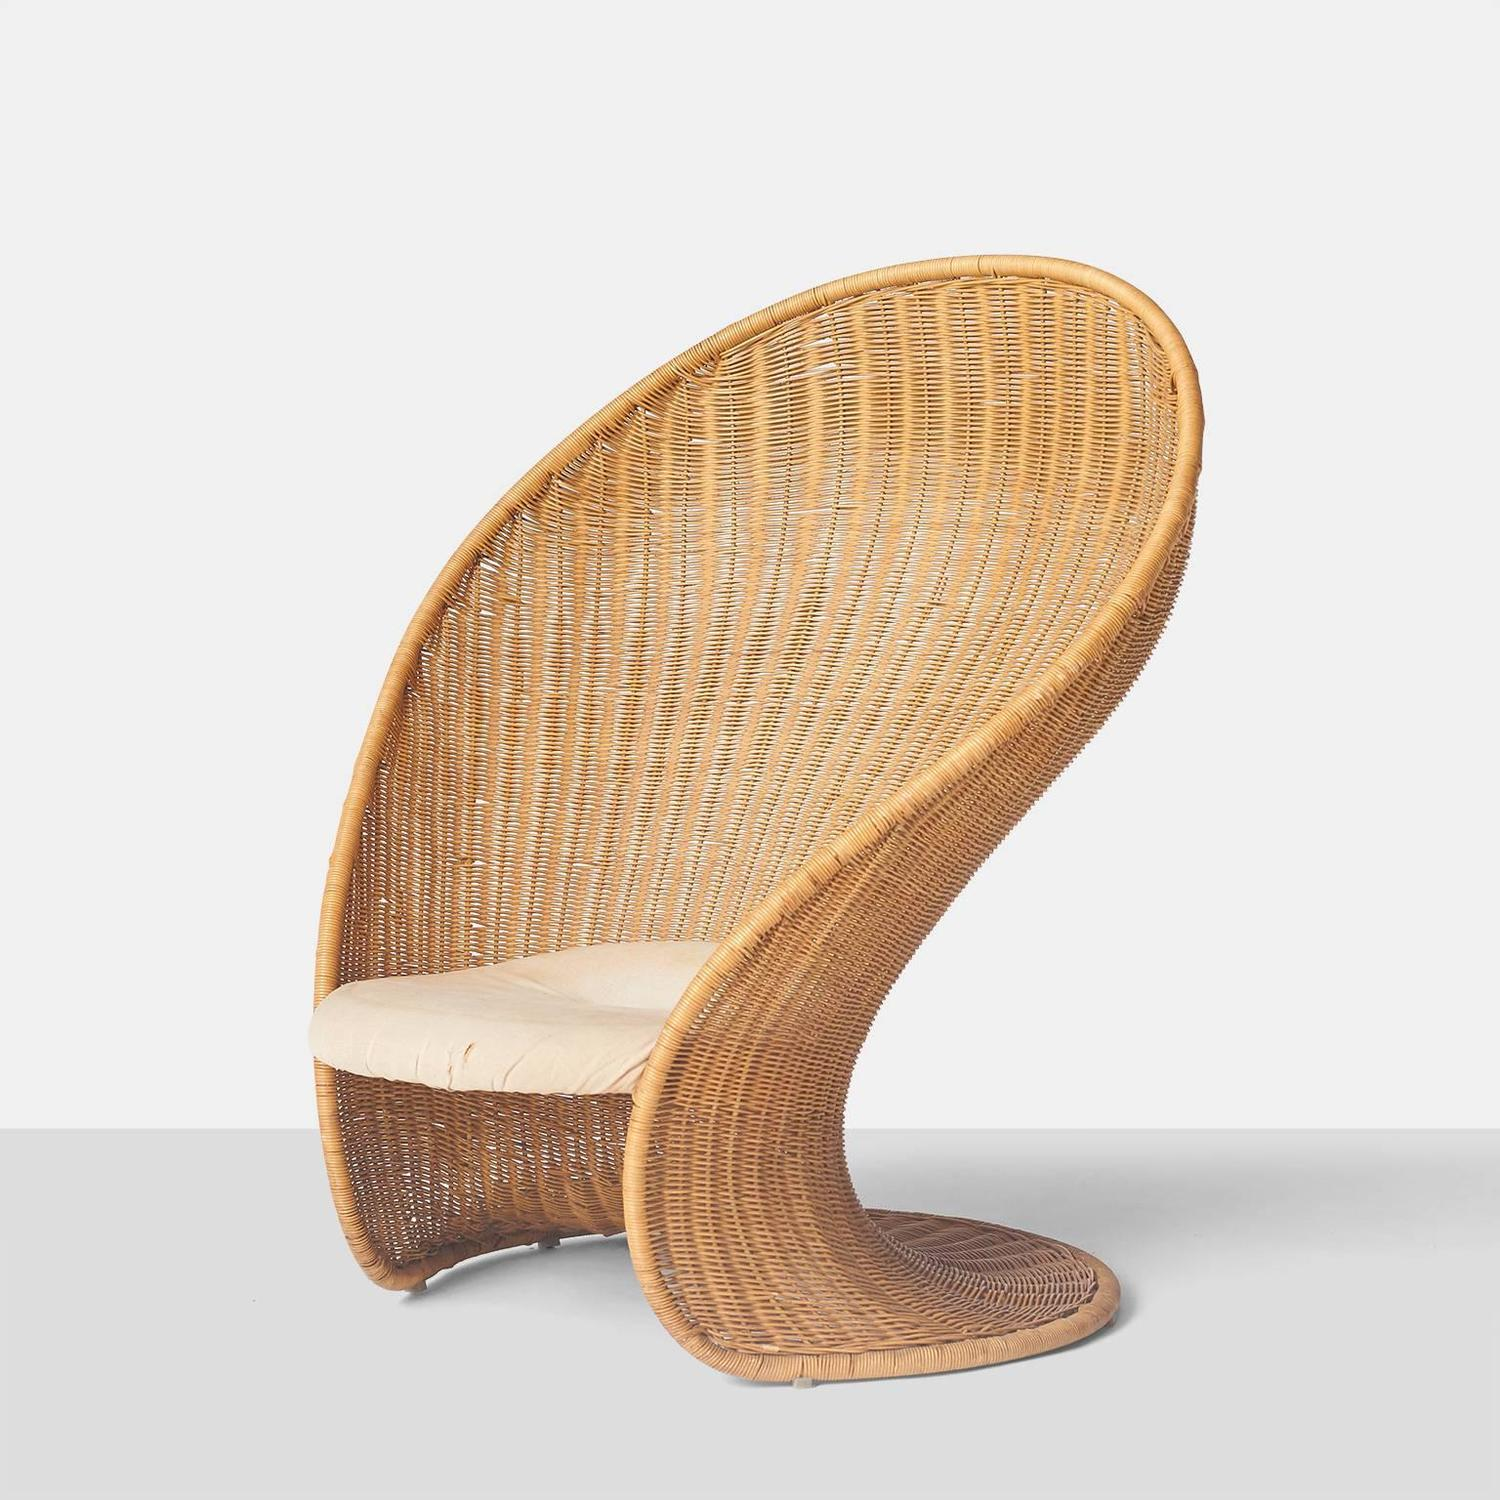 """Foglia"" Wicker Lounge Chair by Giovanni Travasa For Sale at 1stdibs"